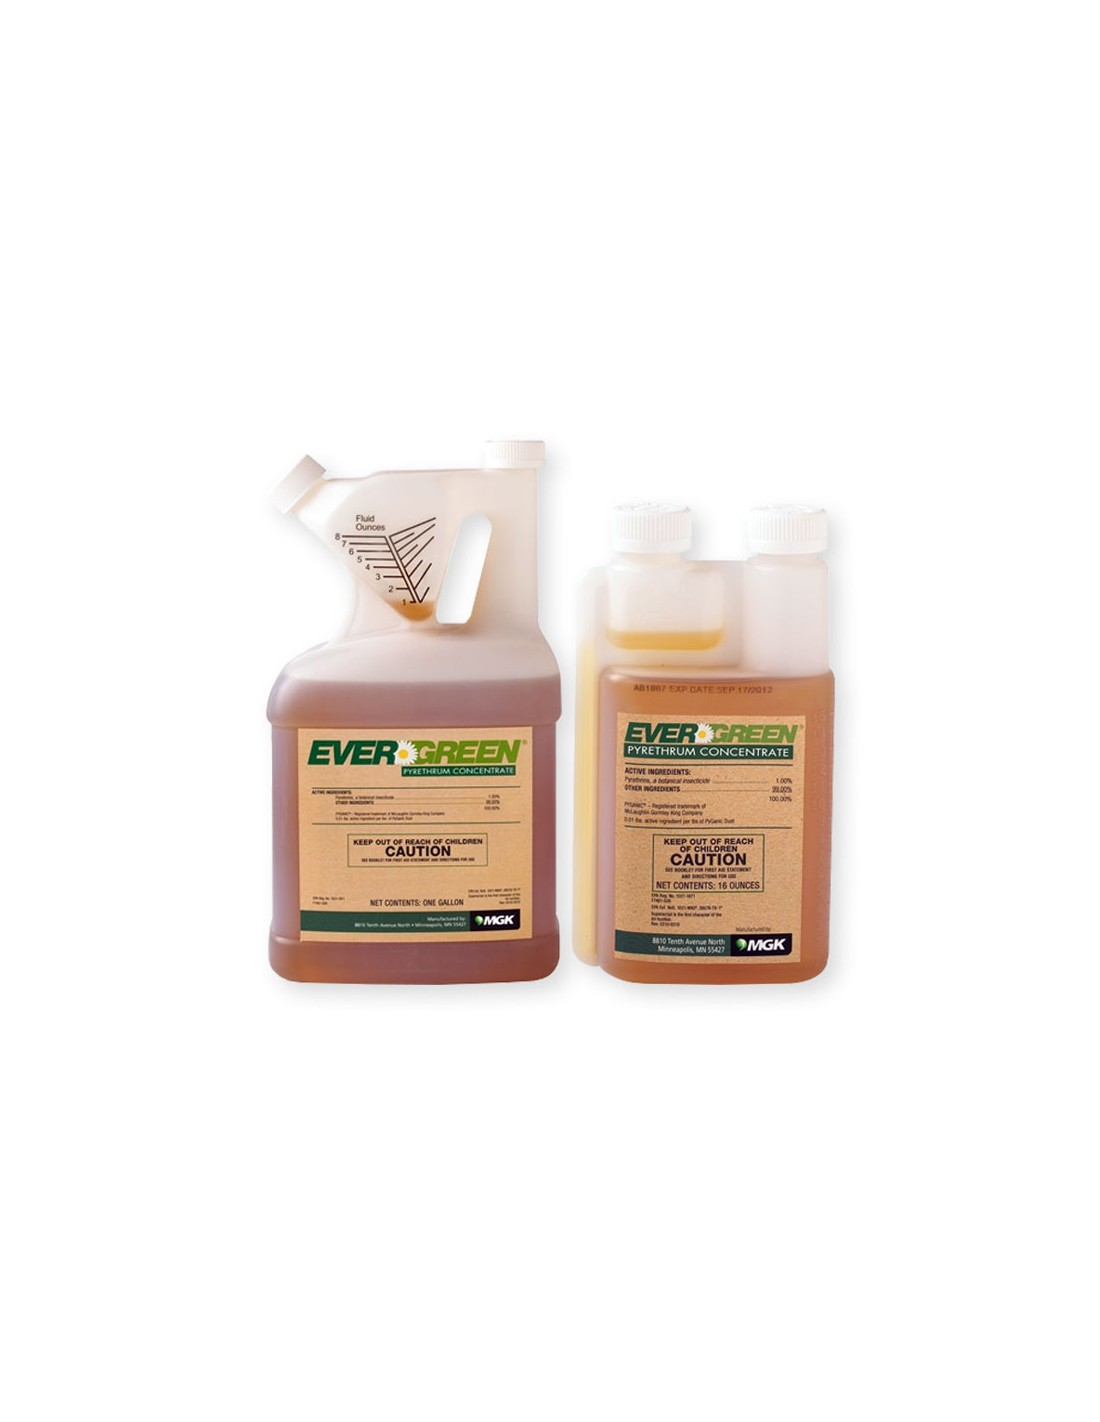 Evergreen Pyrethrum Concentrate Questions & Answers